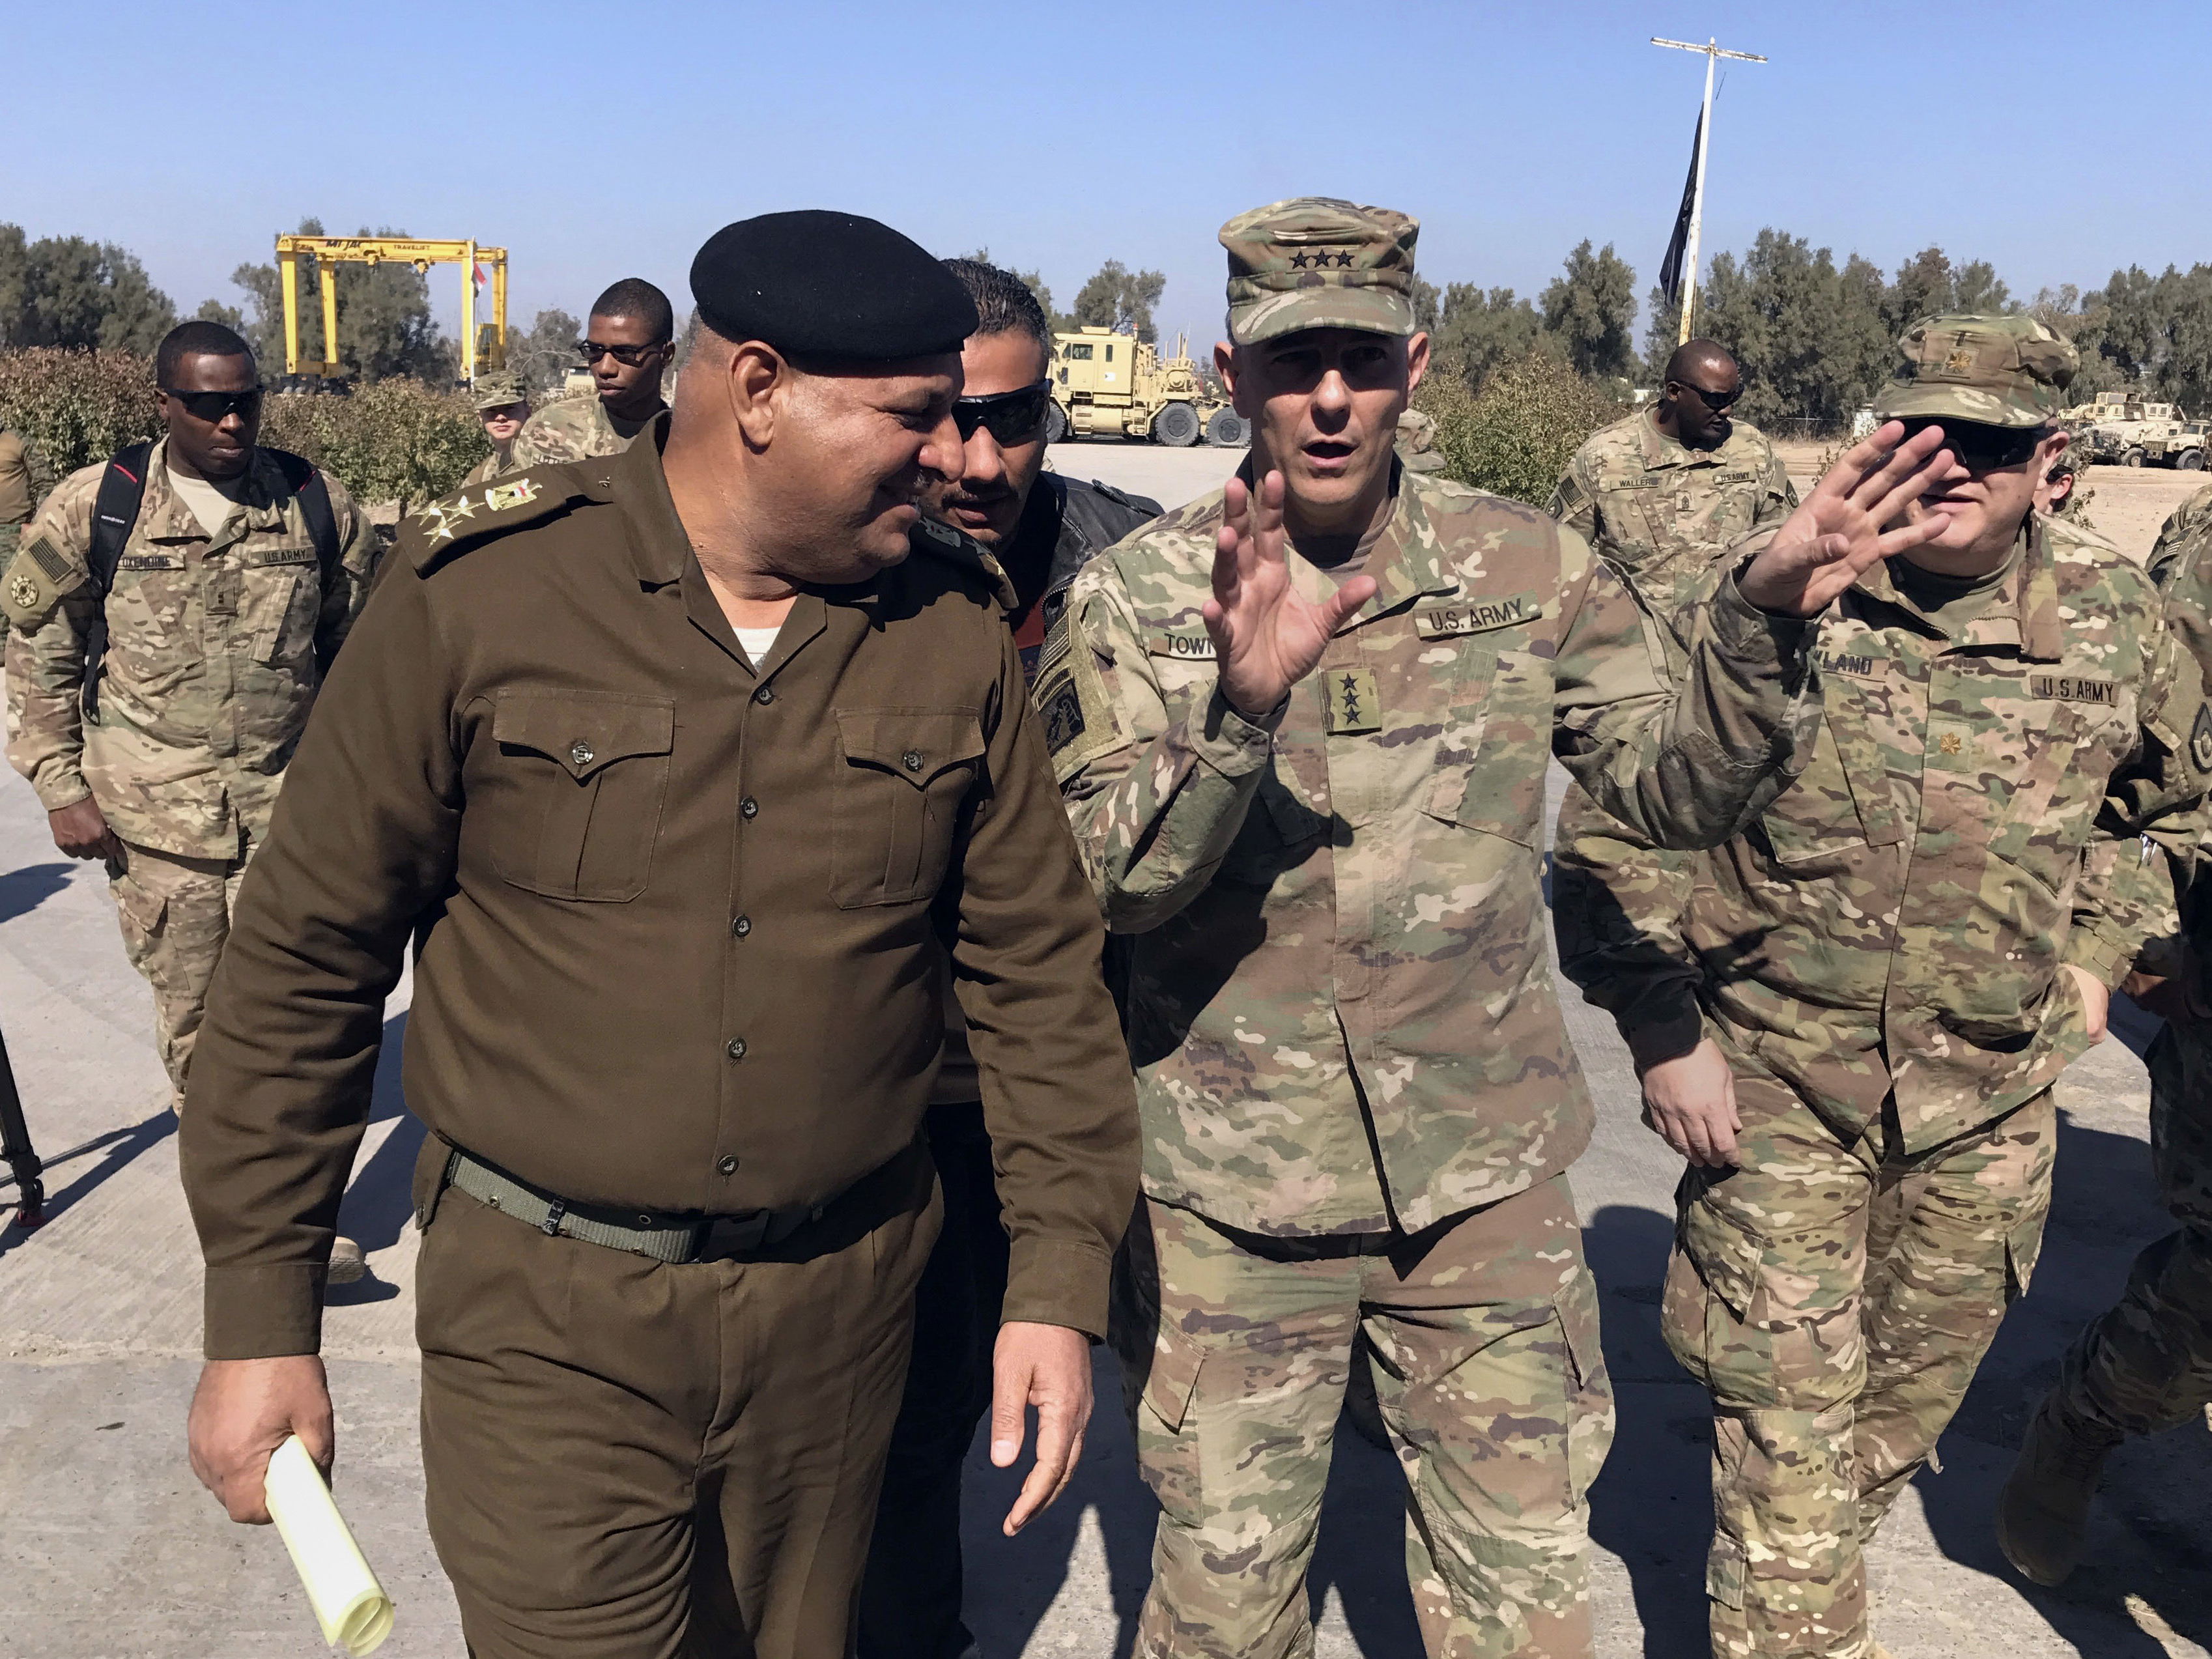 Iraq US-1 FILE - In this Wednesday, Feb. 8, 2017 file photo, U.S. Army Lt. Gen. Stephen Townsend talks with an Iraqi officer during a tour north of Baghdad, Iraq. Reverberations from President Donald Trump's travel ban and other stances are threatening to undermine future U.S.-Iraqi security cooperation, rattling a key alliance that over the past two years has slowly beaten back the Islamic State group. Iraq's prime minister, Haider al-Abadi, has sought to contain public anger sparked by the ban and by Trump's repeated statements that the Americans should have taken Iraq's oil, as well as his hard line against Iran, a close ally of Baghdad. (AP Photo/Ali Abdul Hassan, File)